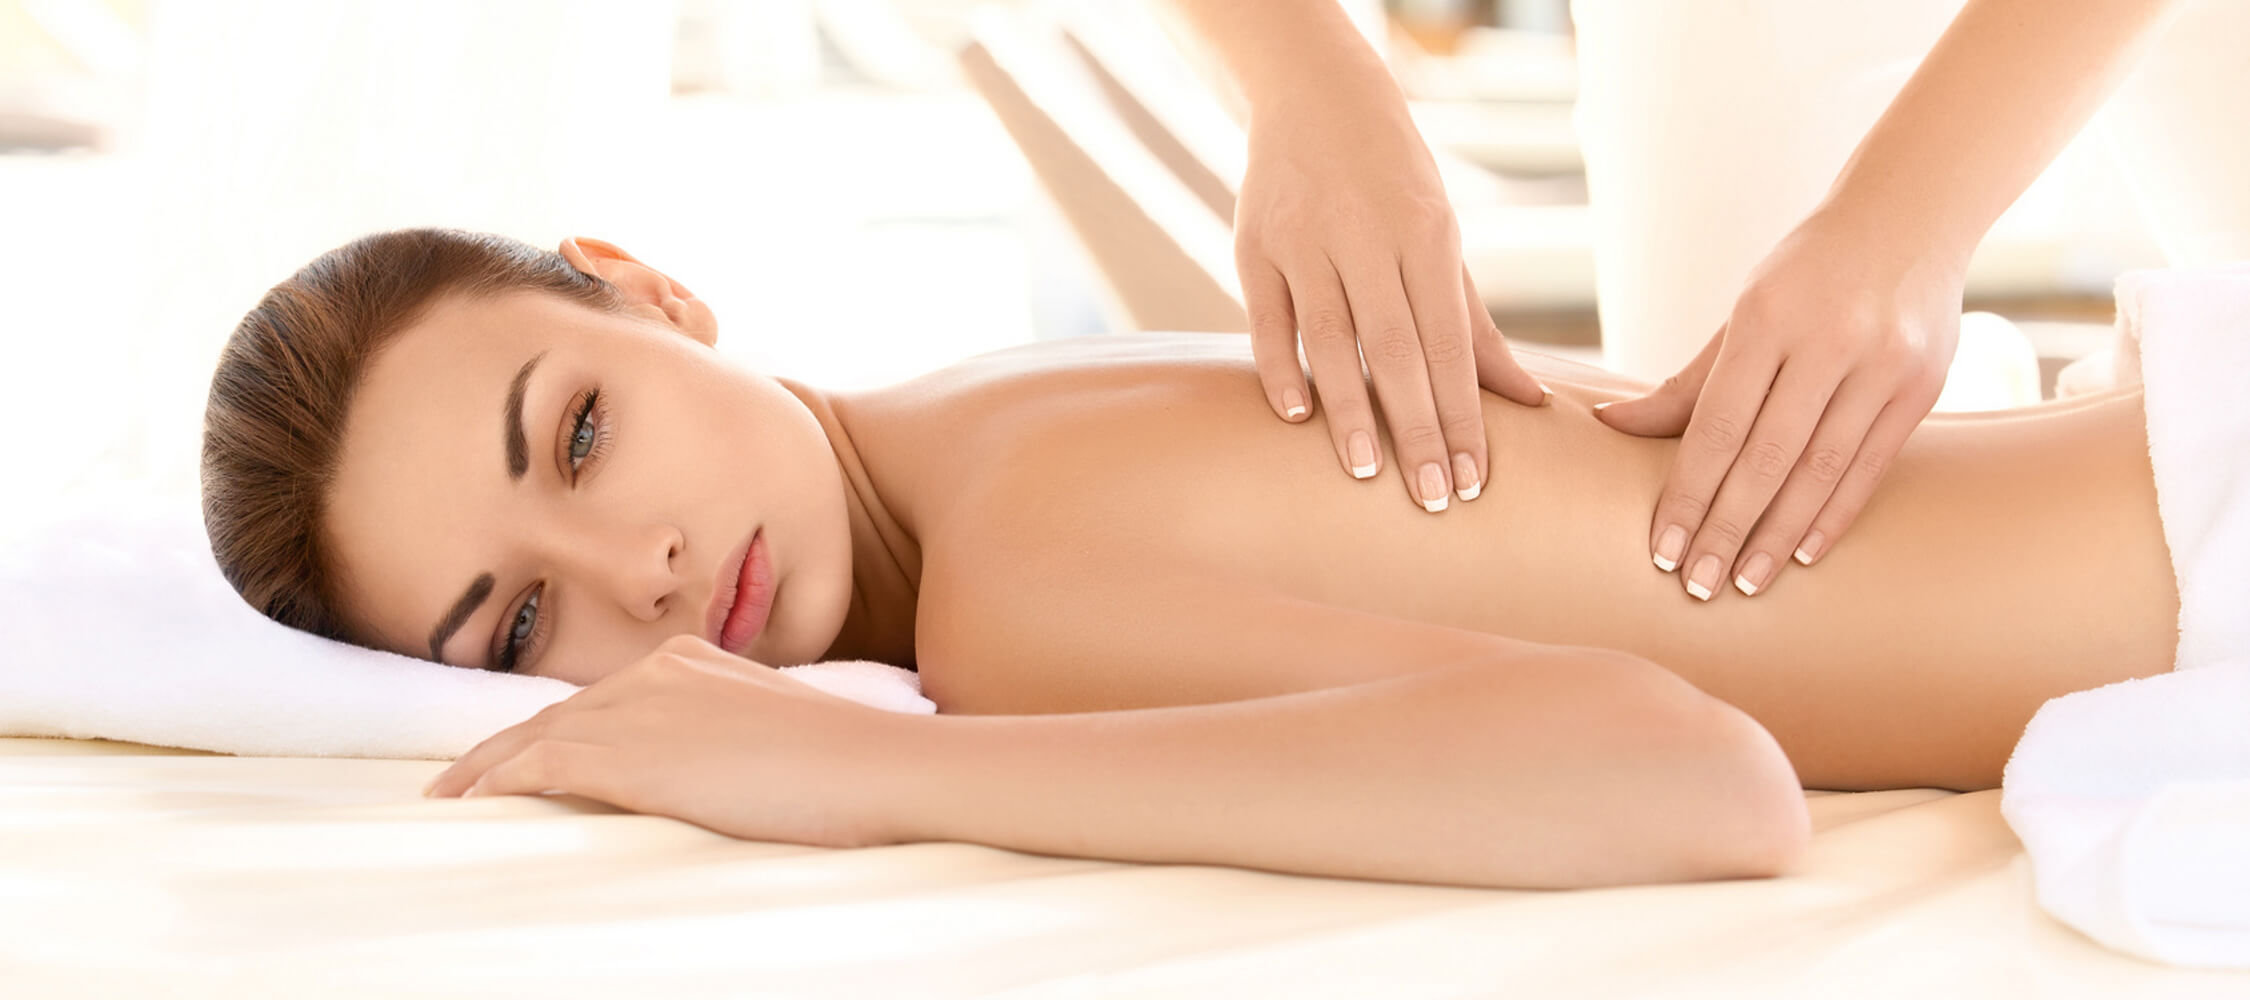 City_Hotel_Merano_Spa_Massage_Ruecken_Nacken_55029930_2250x1000